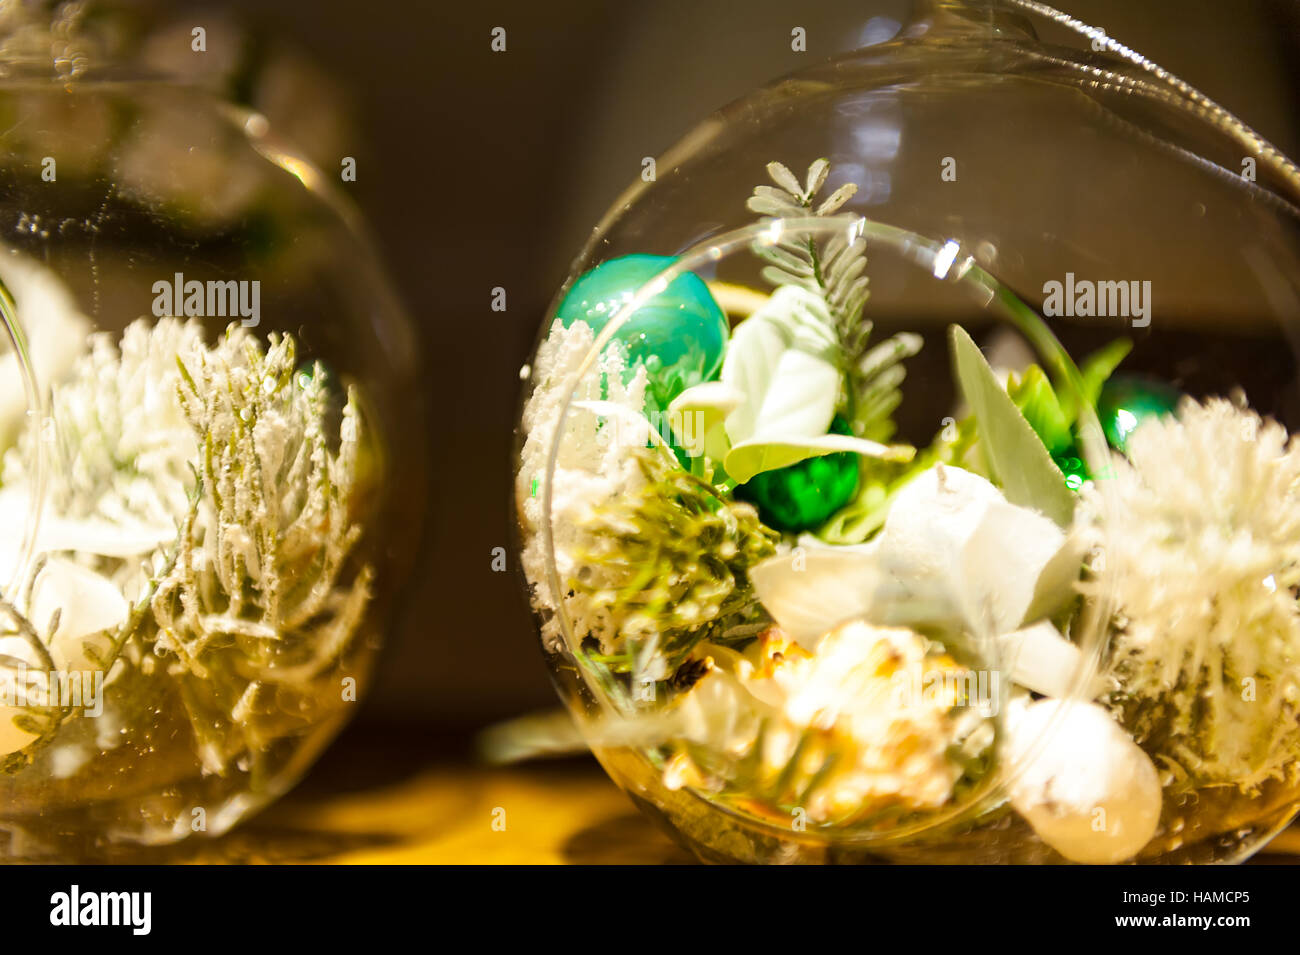 Terrarium With Succulent Plants On Wooden Table Stock Photo Alamy